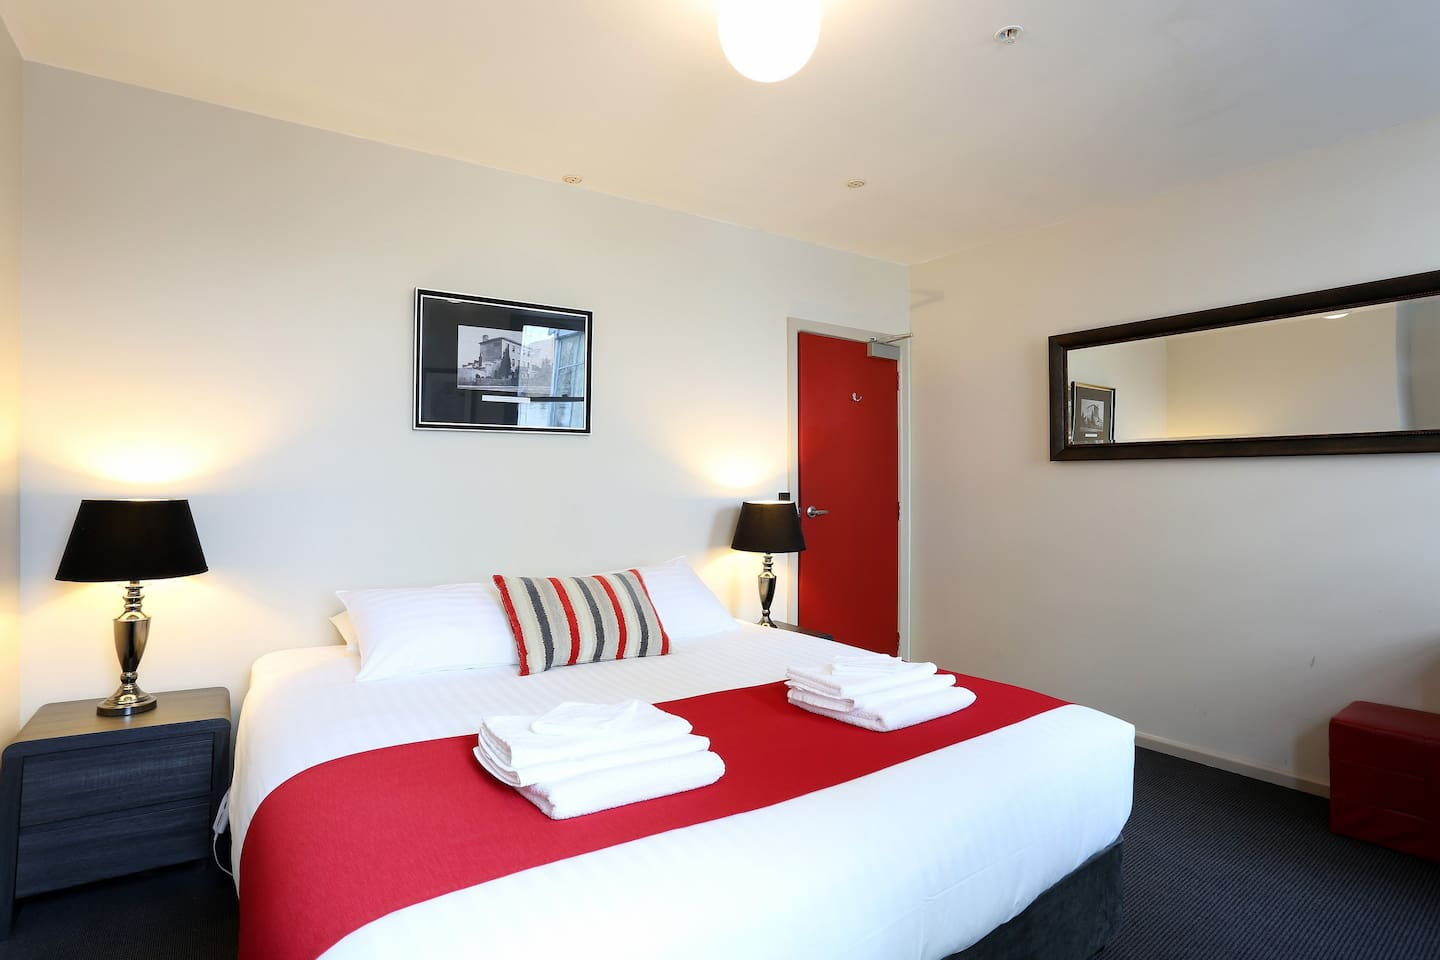 King Room (also available as twin single beds).